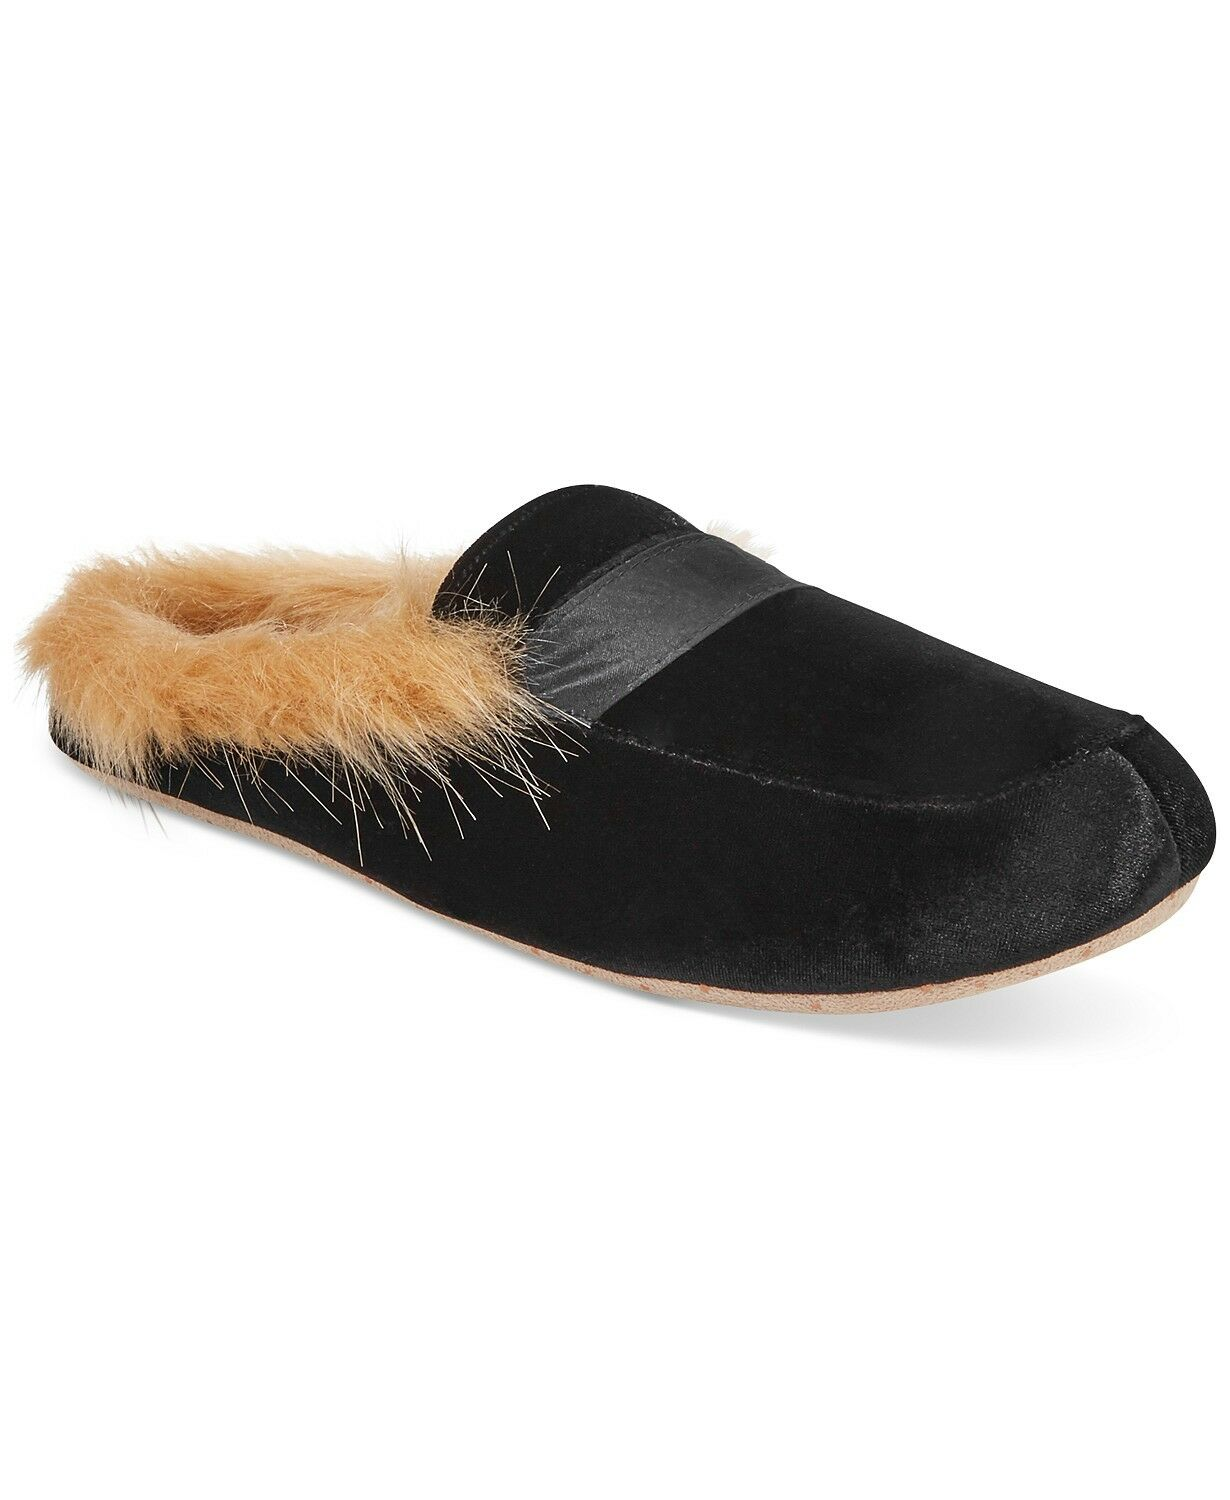 NEW IN BOX International Concepts INC Faux-Fur Slide Slippers in Black L 9/10